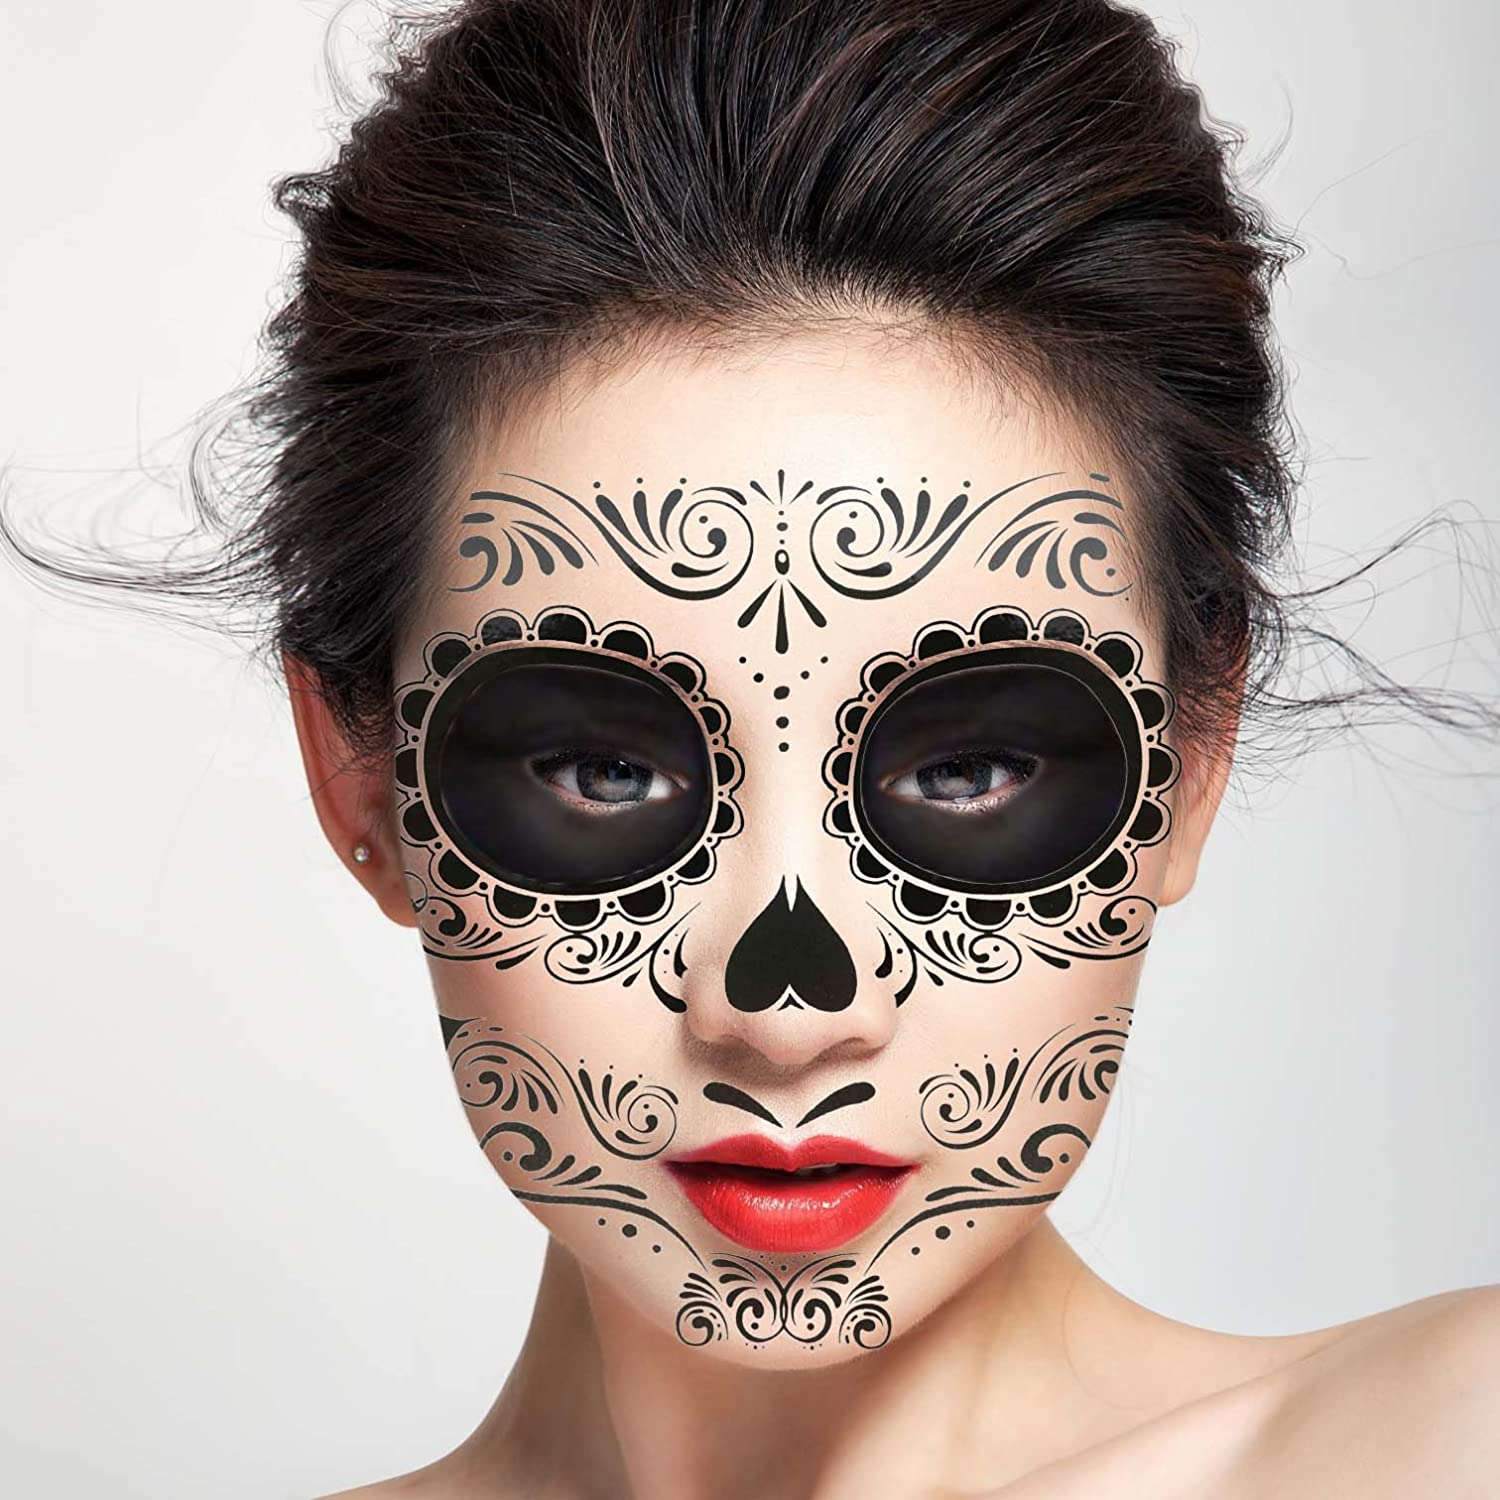 COKOHAPPY Black Skeleton Day of the Dead Temporary Face Tattoo Kit Men or Women - Pack of 2 Kits